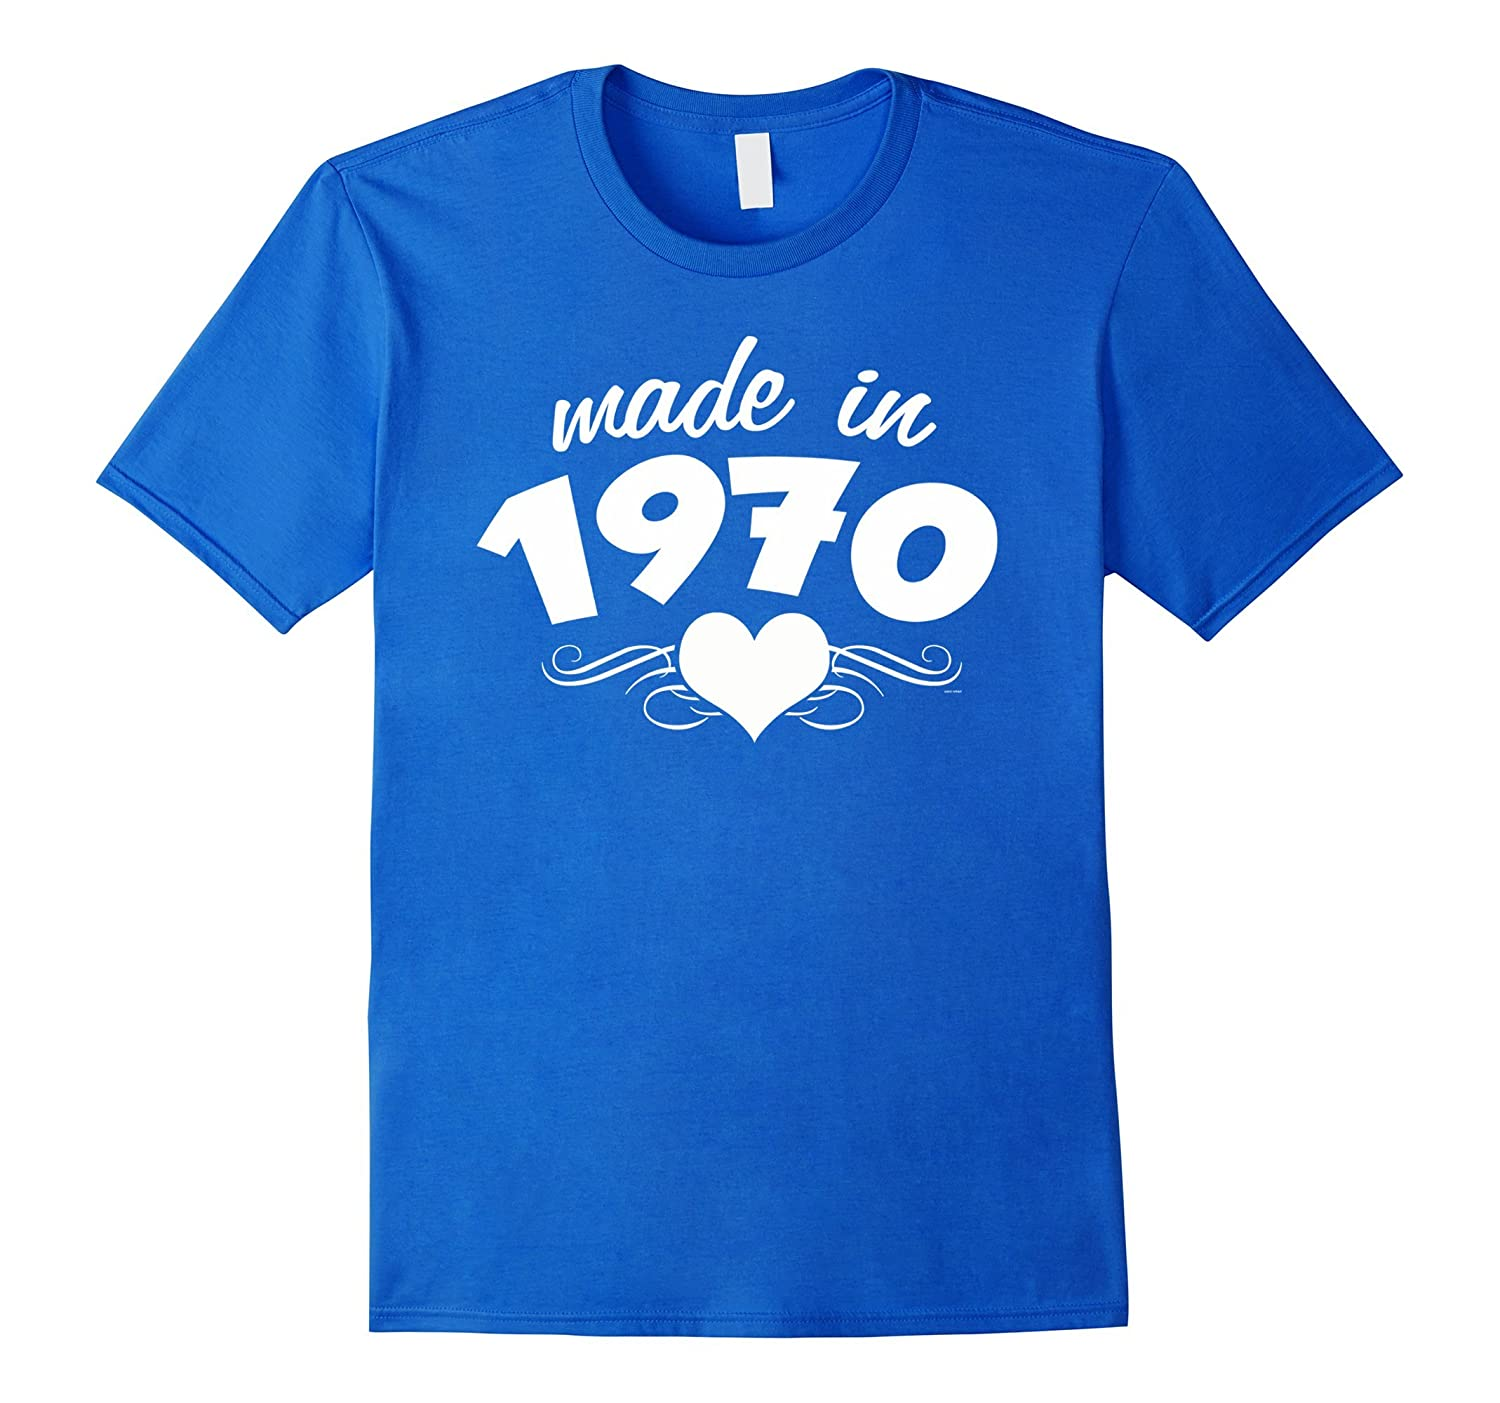 Gifts for her 47th birthday Made in 1970 woman tshirt